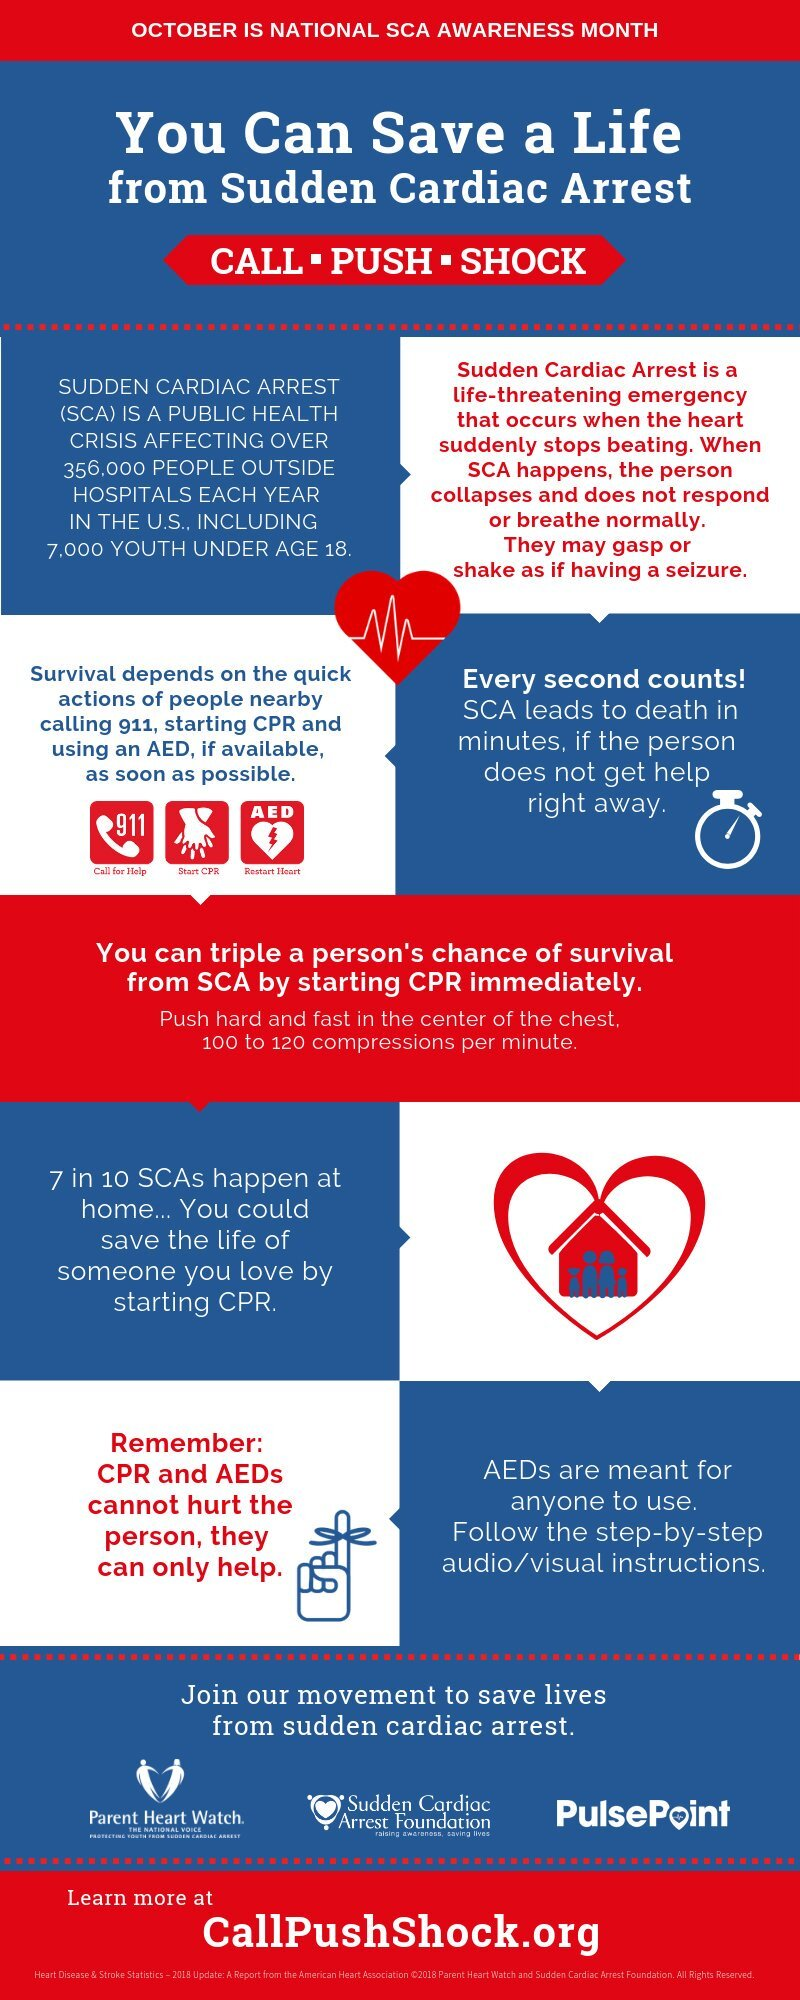 PulsePoint Call Push Shock Infographic Social Media Asset.